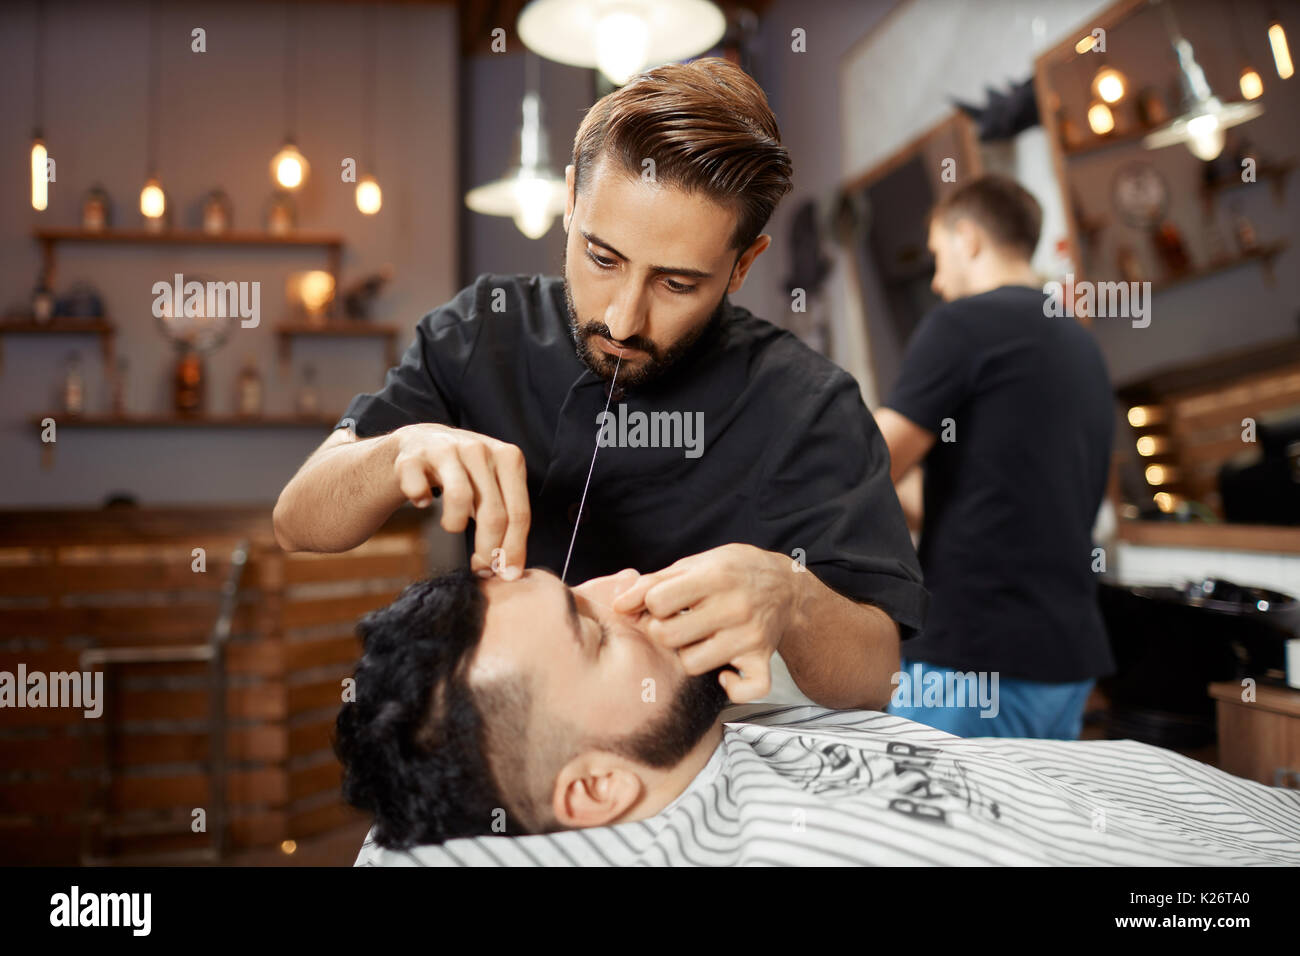 Hairdresser working at barbershop, correcting bread with white thread. - Stock Image